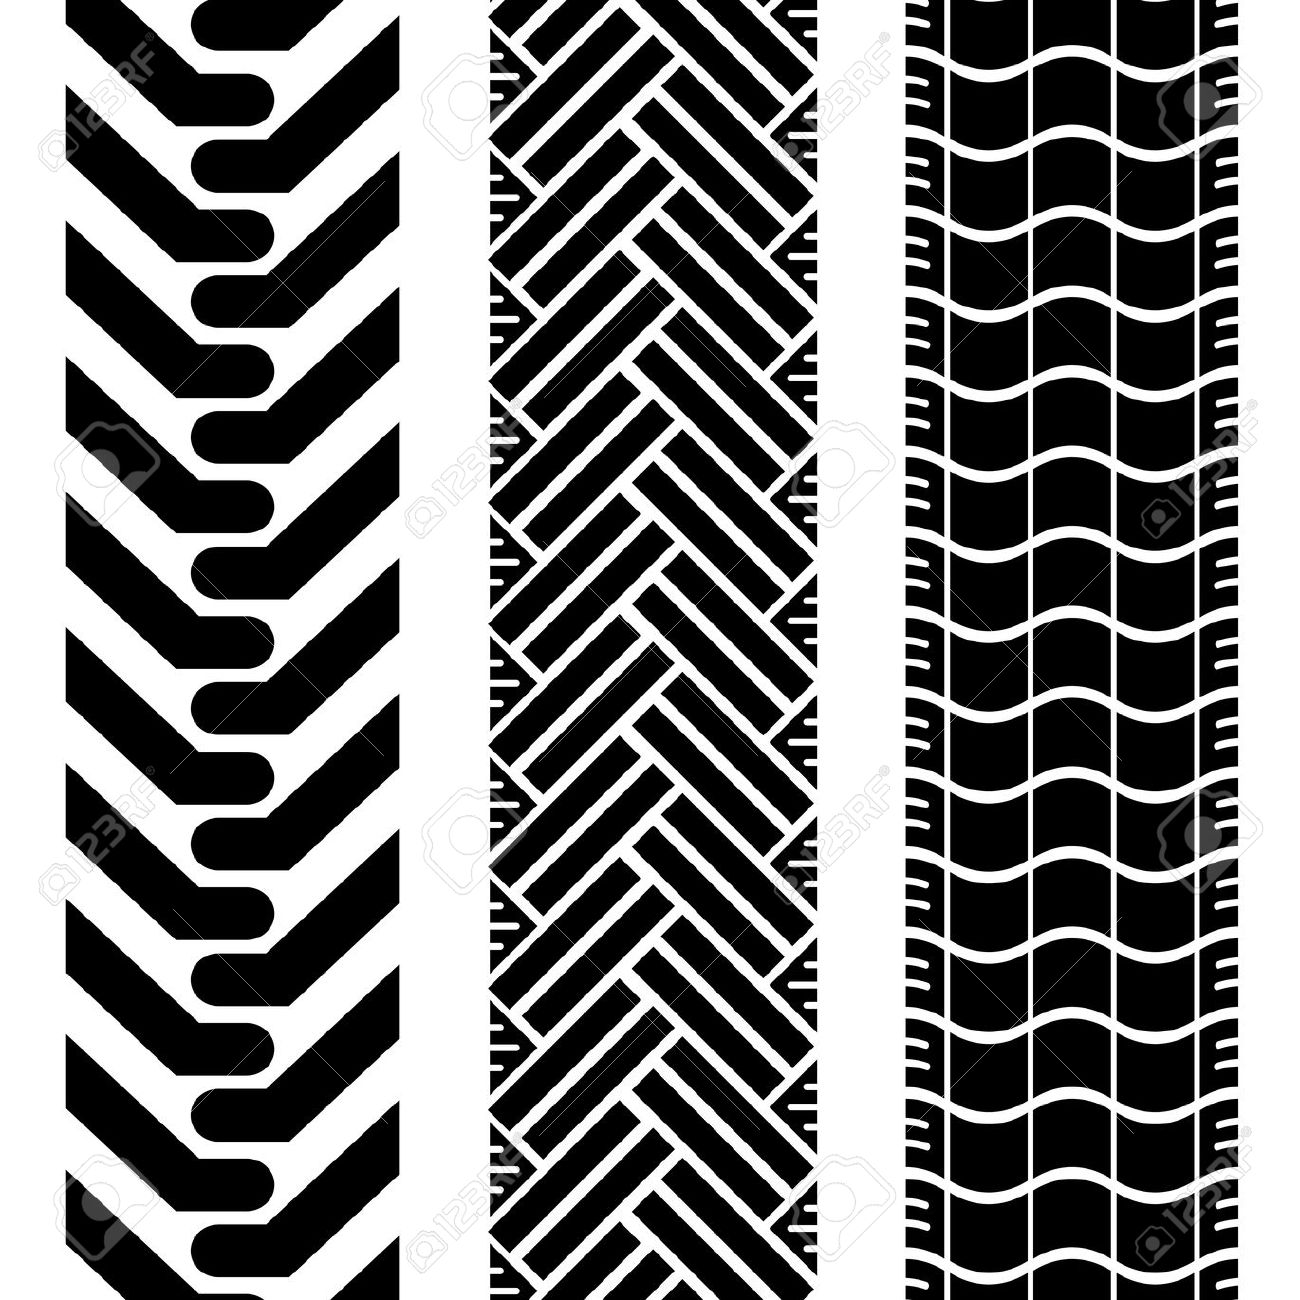 Tire tread patterns clipart clip free download Collection Of Tire Treads In Black And White With Repeat Pattern ... clip free download